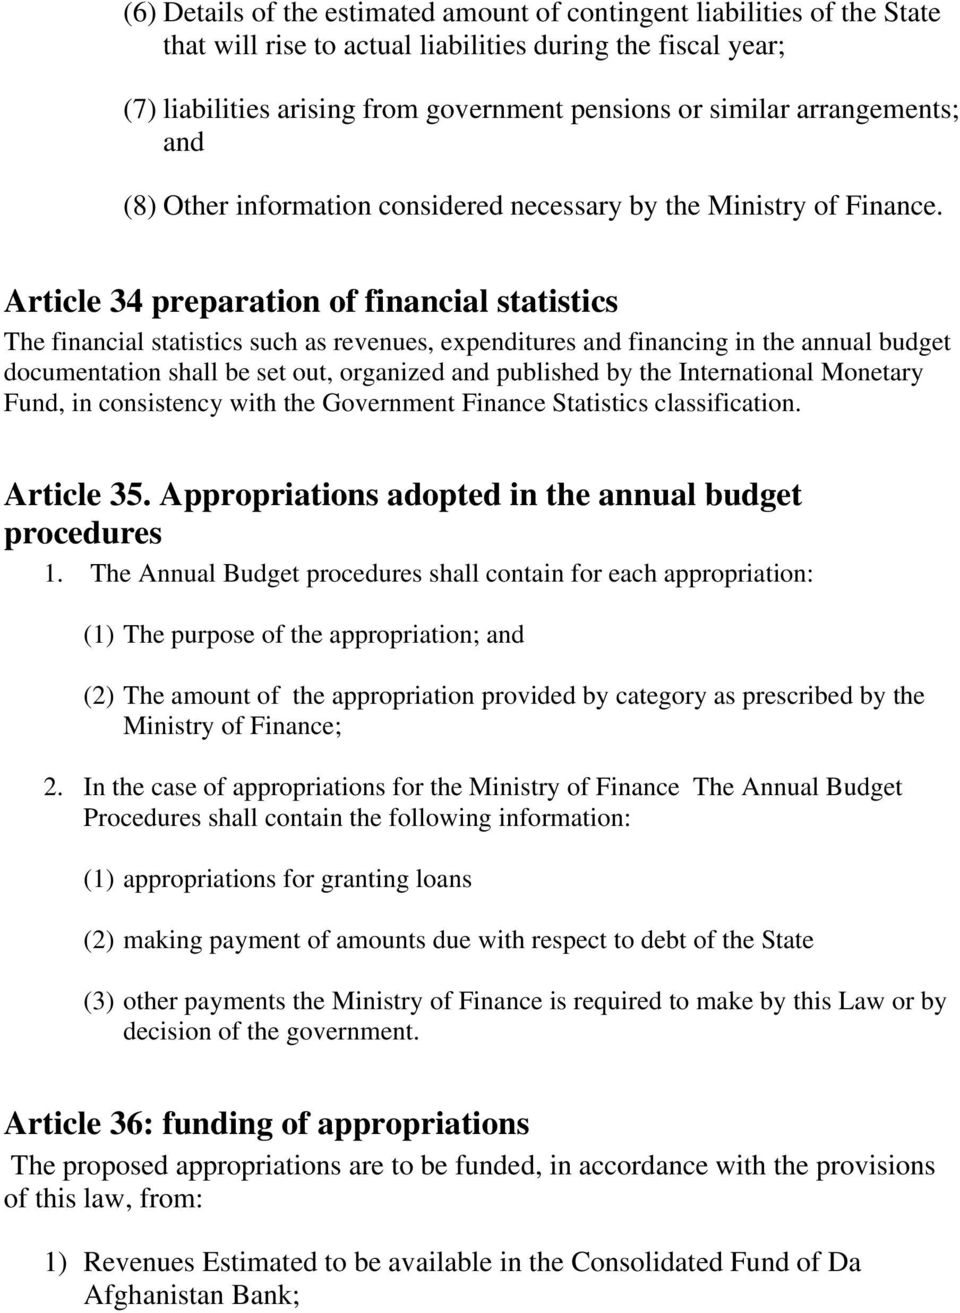 Article 34 preparation of financial statistics The financial statistics such as revenues, expenditures and financing in the annual budget documentation shall be set out, organized and published by